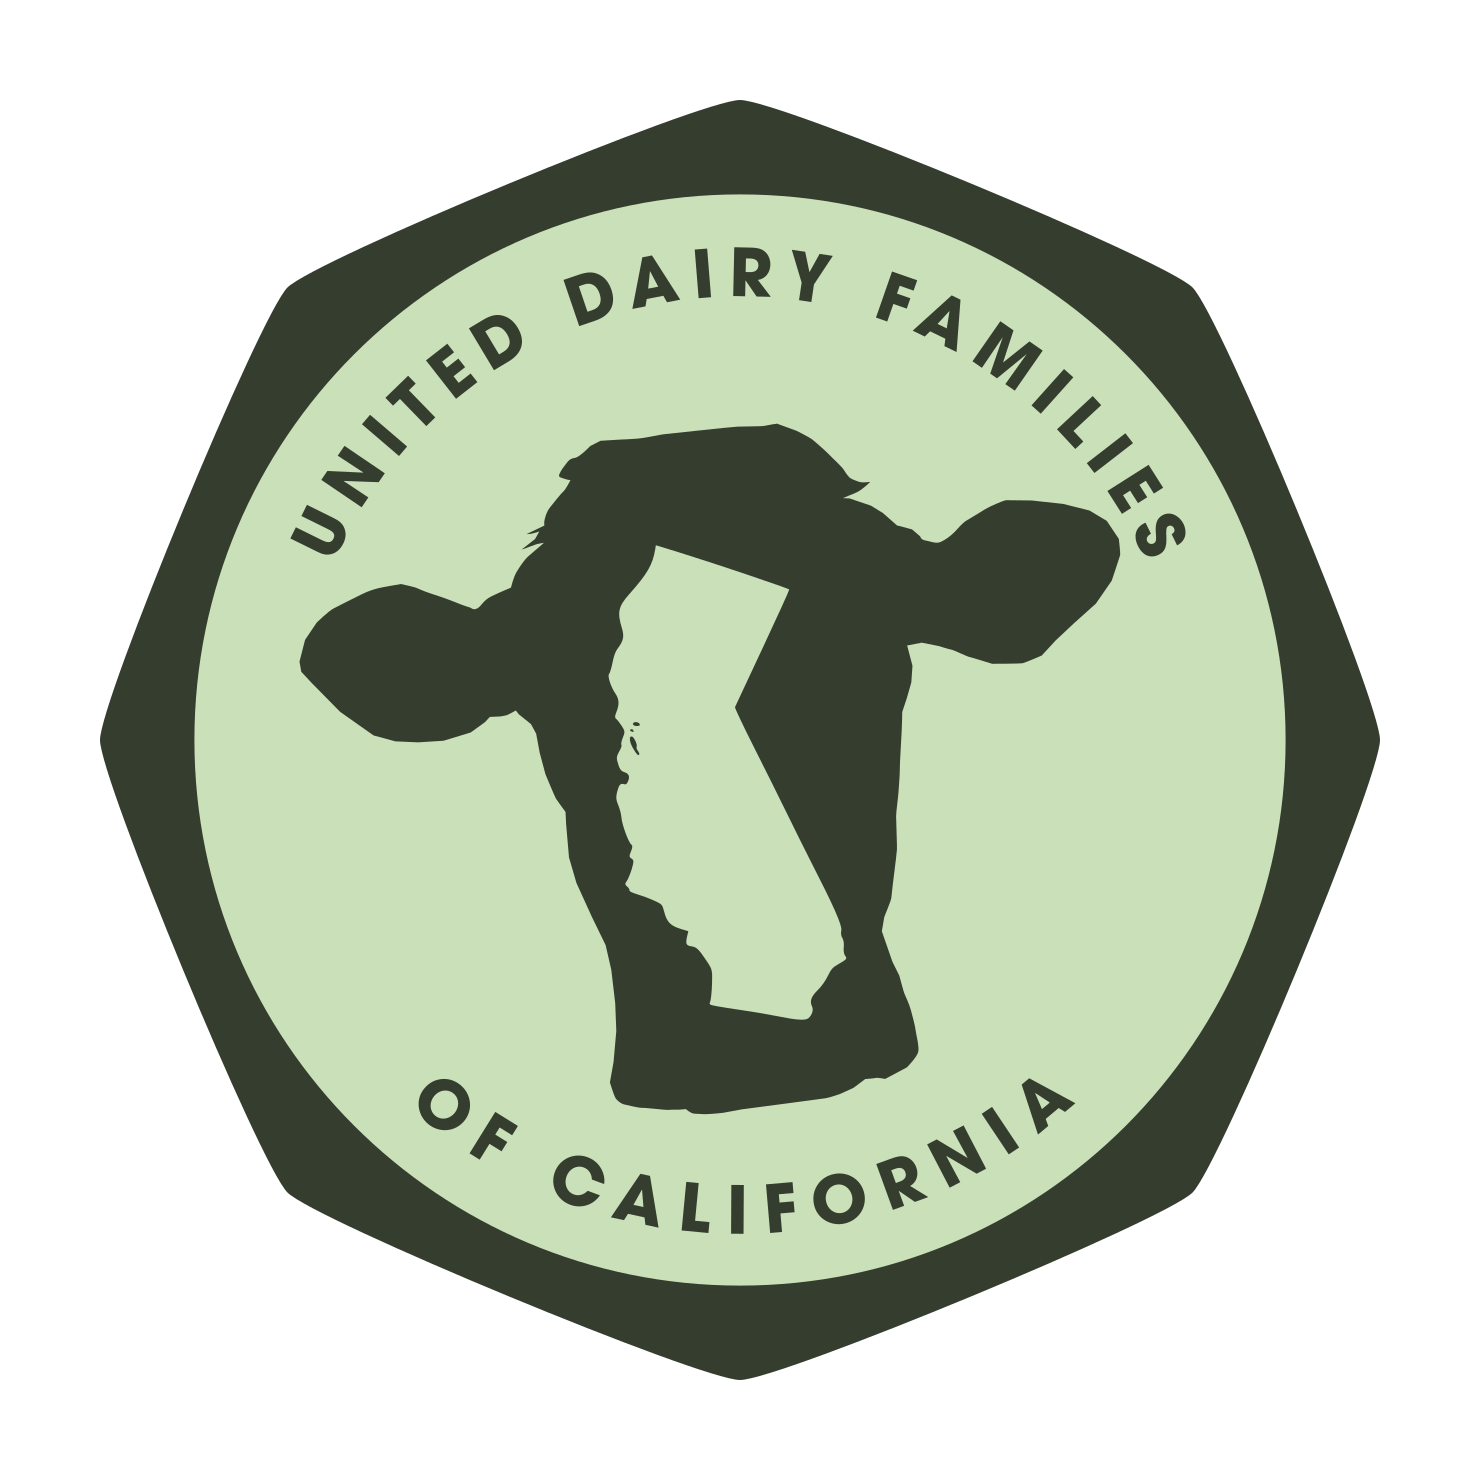 United Dairy Families of California